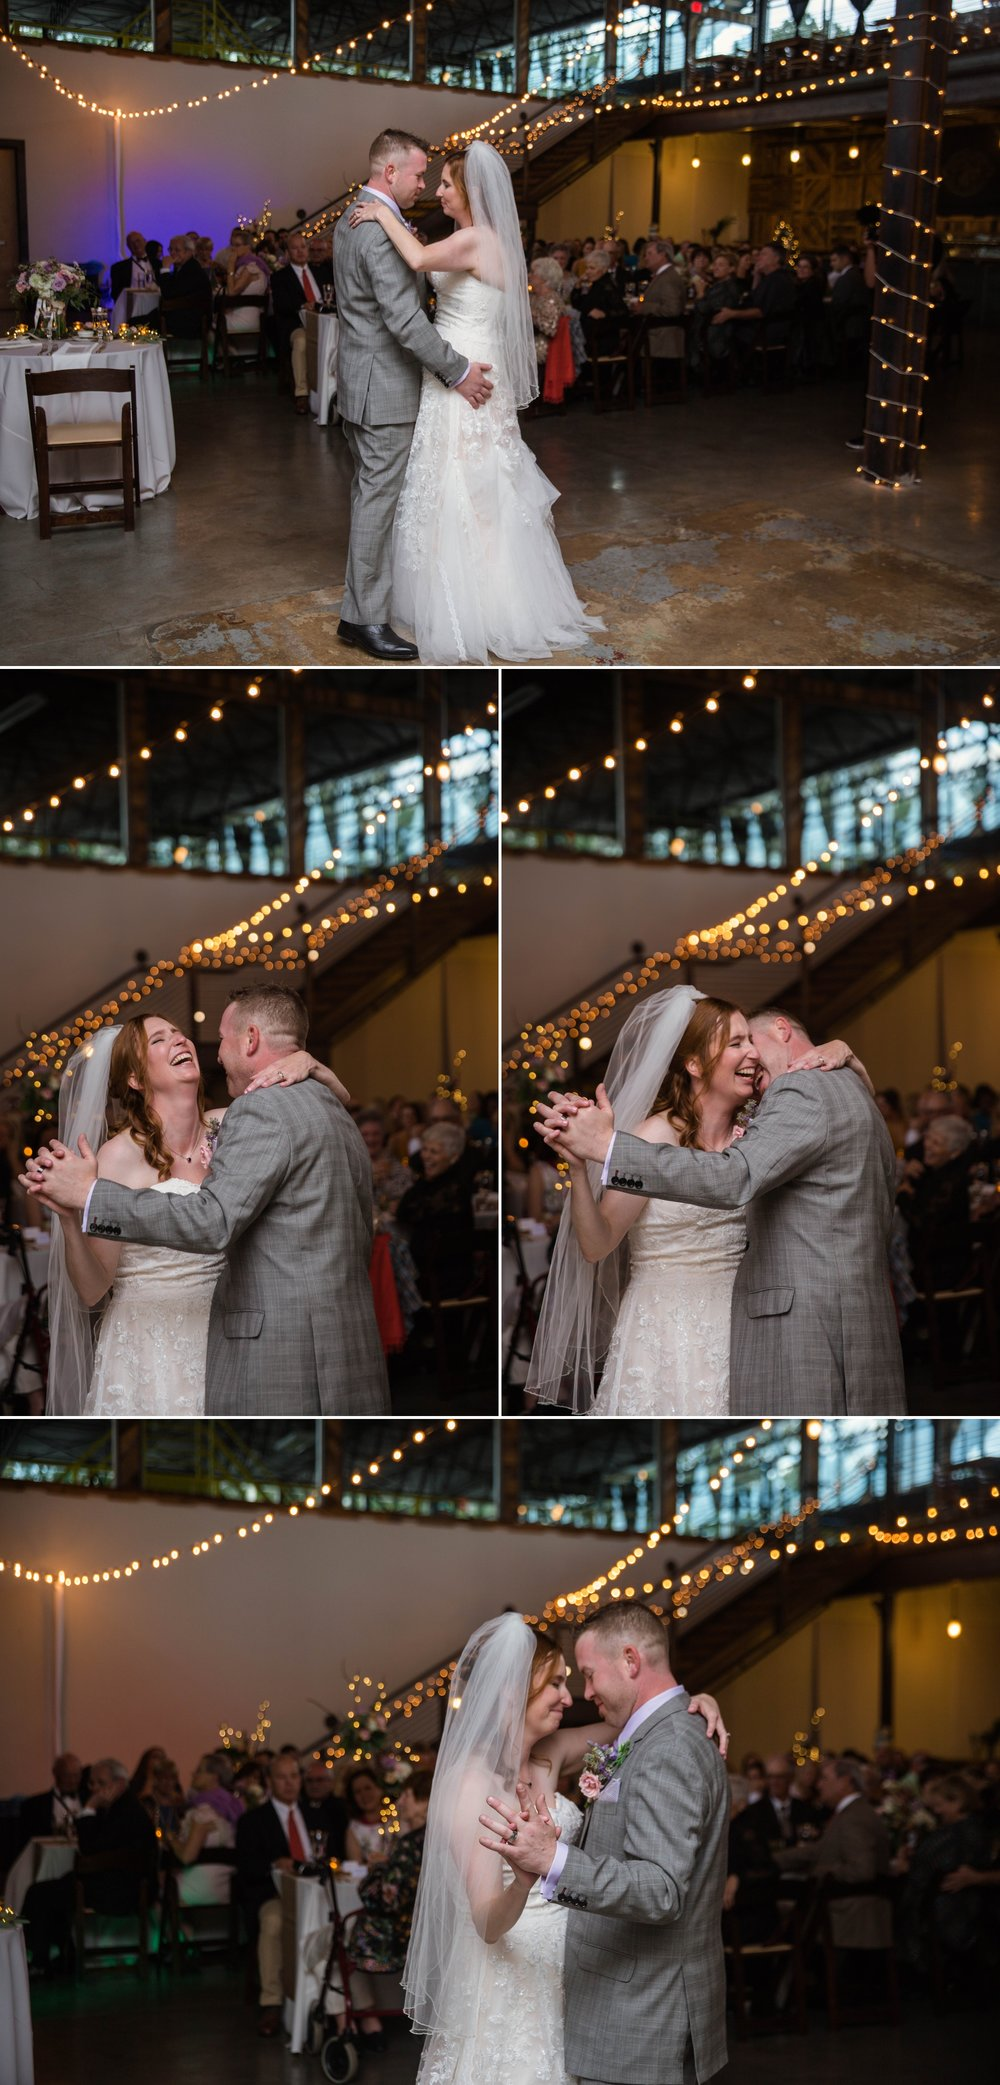 Wedding Photography at the Highland Brewing Company in Asheville North Carolina - Katie + Adam - Johanna Dye Photographer 15.jpg